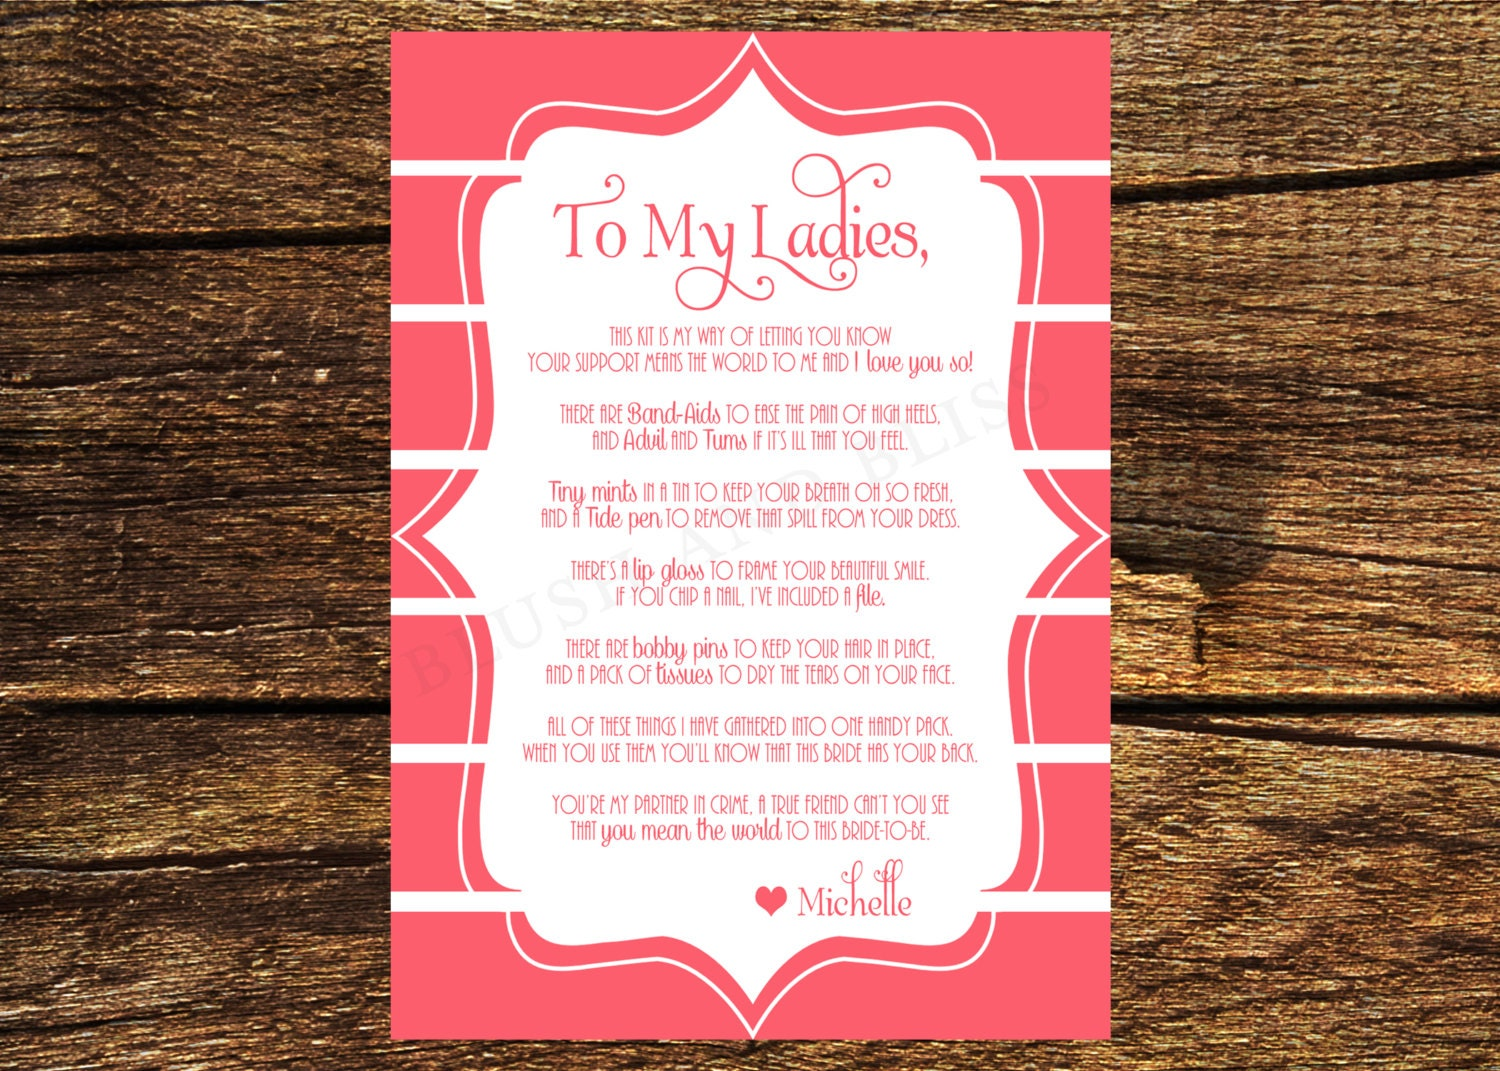 fiftieth birthday invitation poems - Picture Ideas References